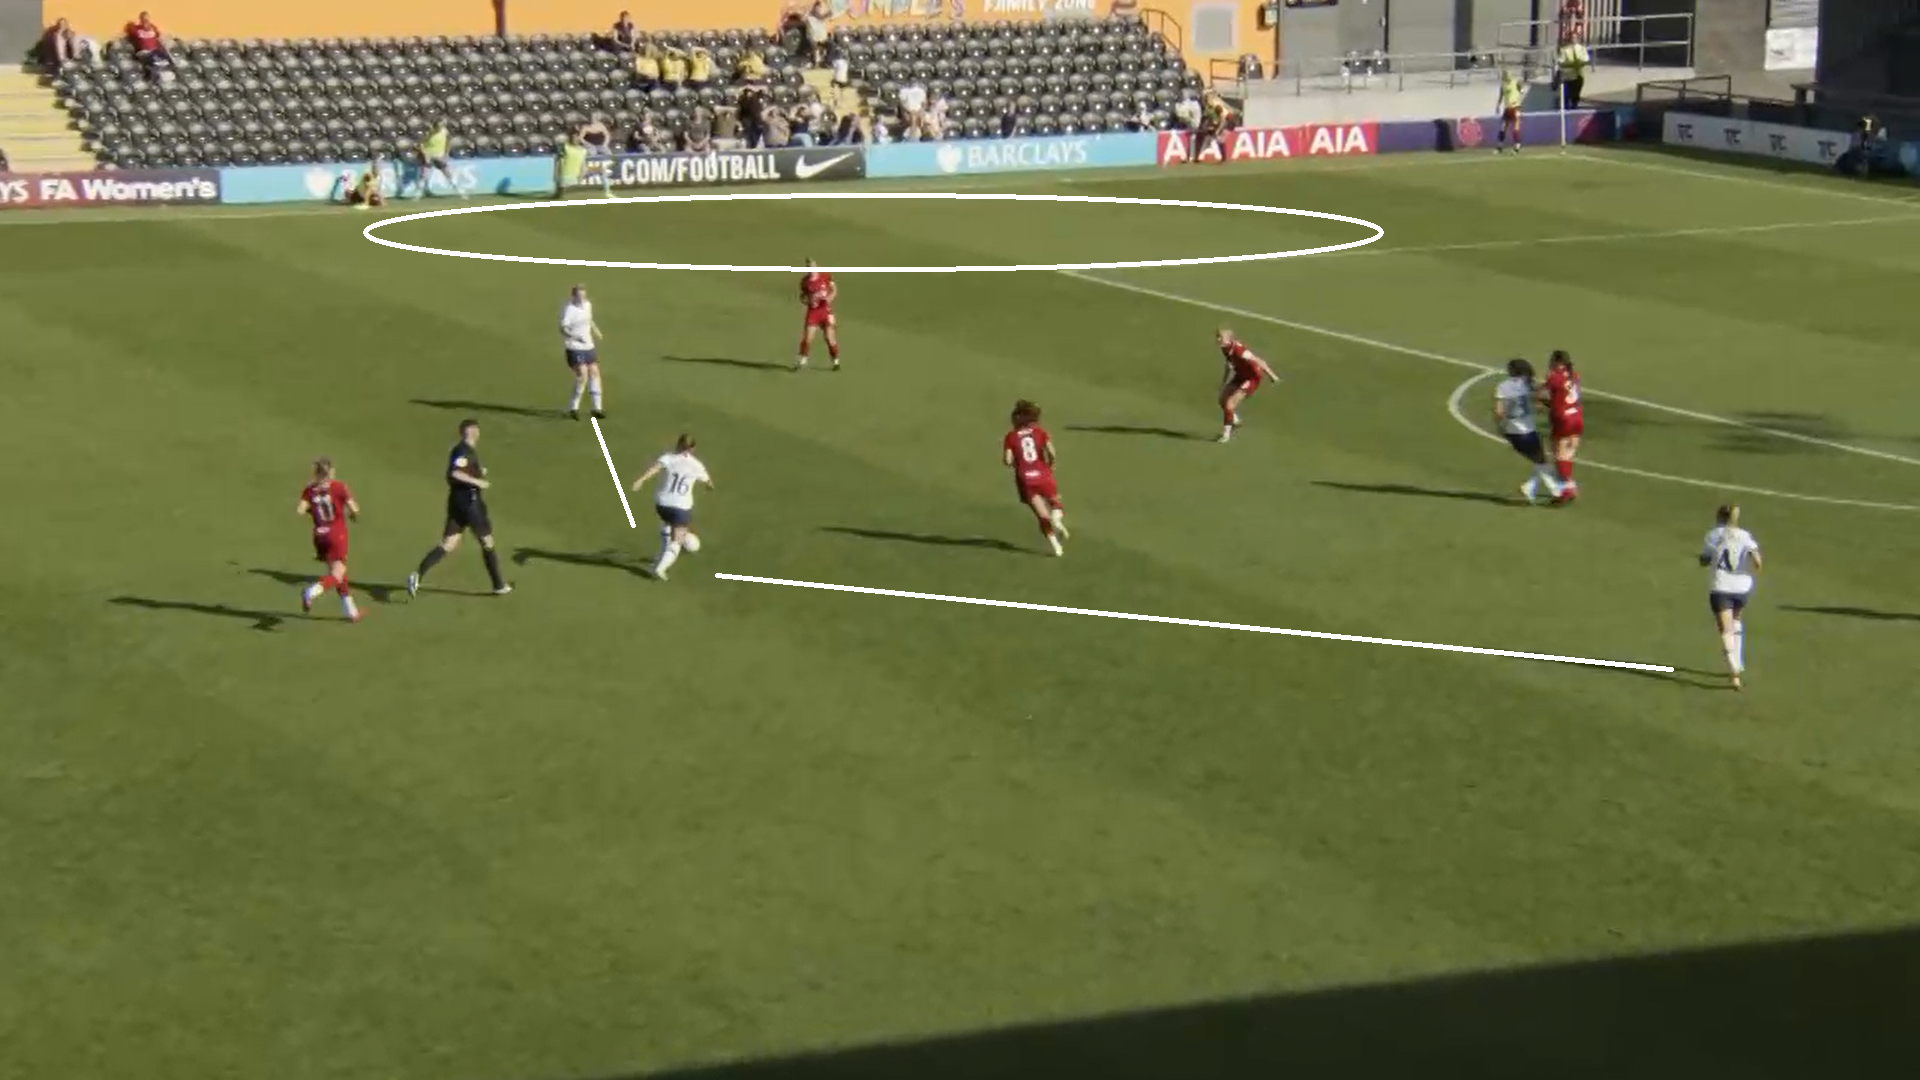 FA WSL 2019/20: Spurs vs Liverpool Tactical Analysis tactics